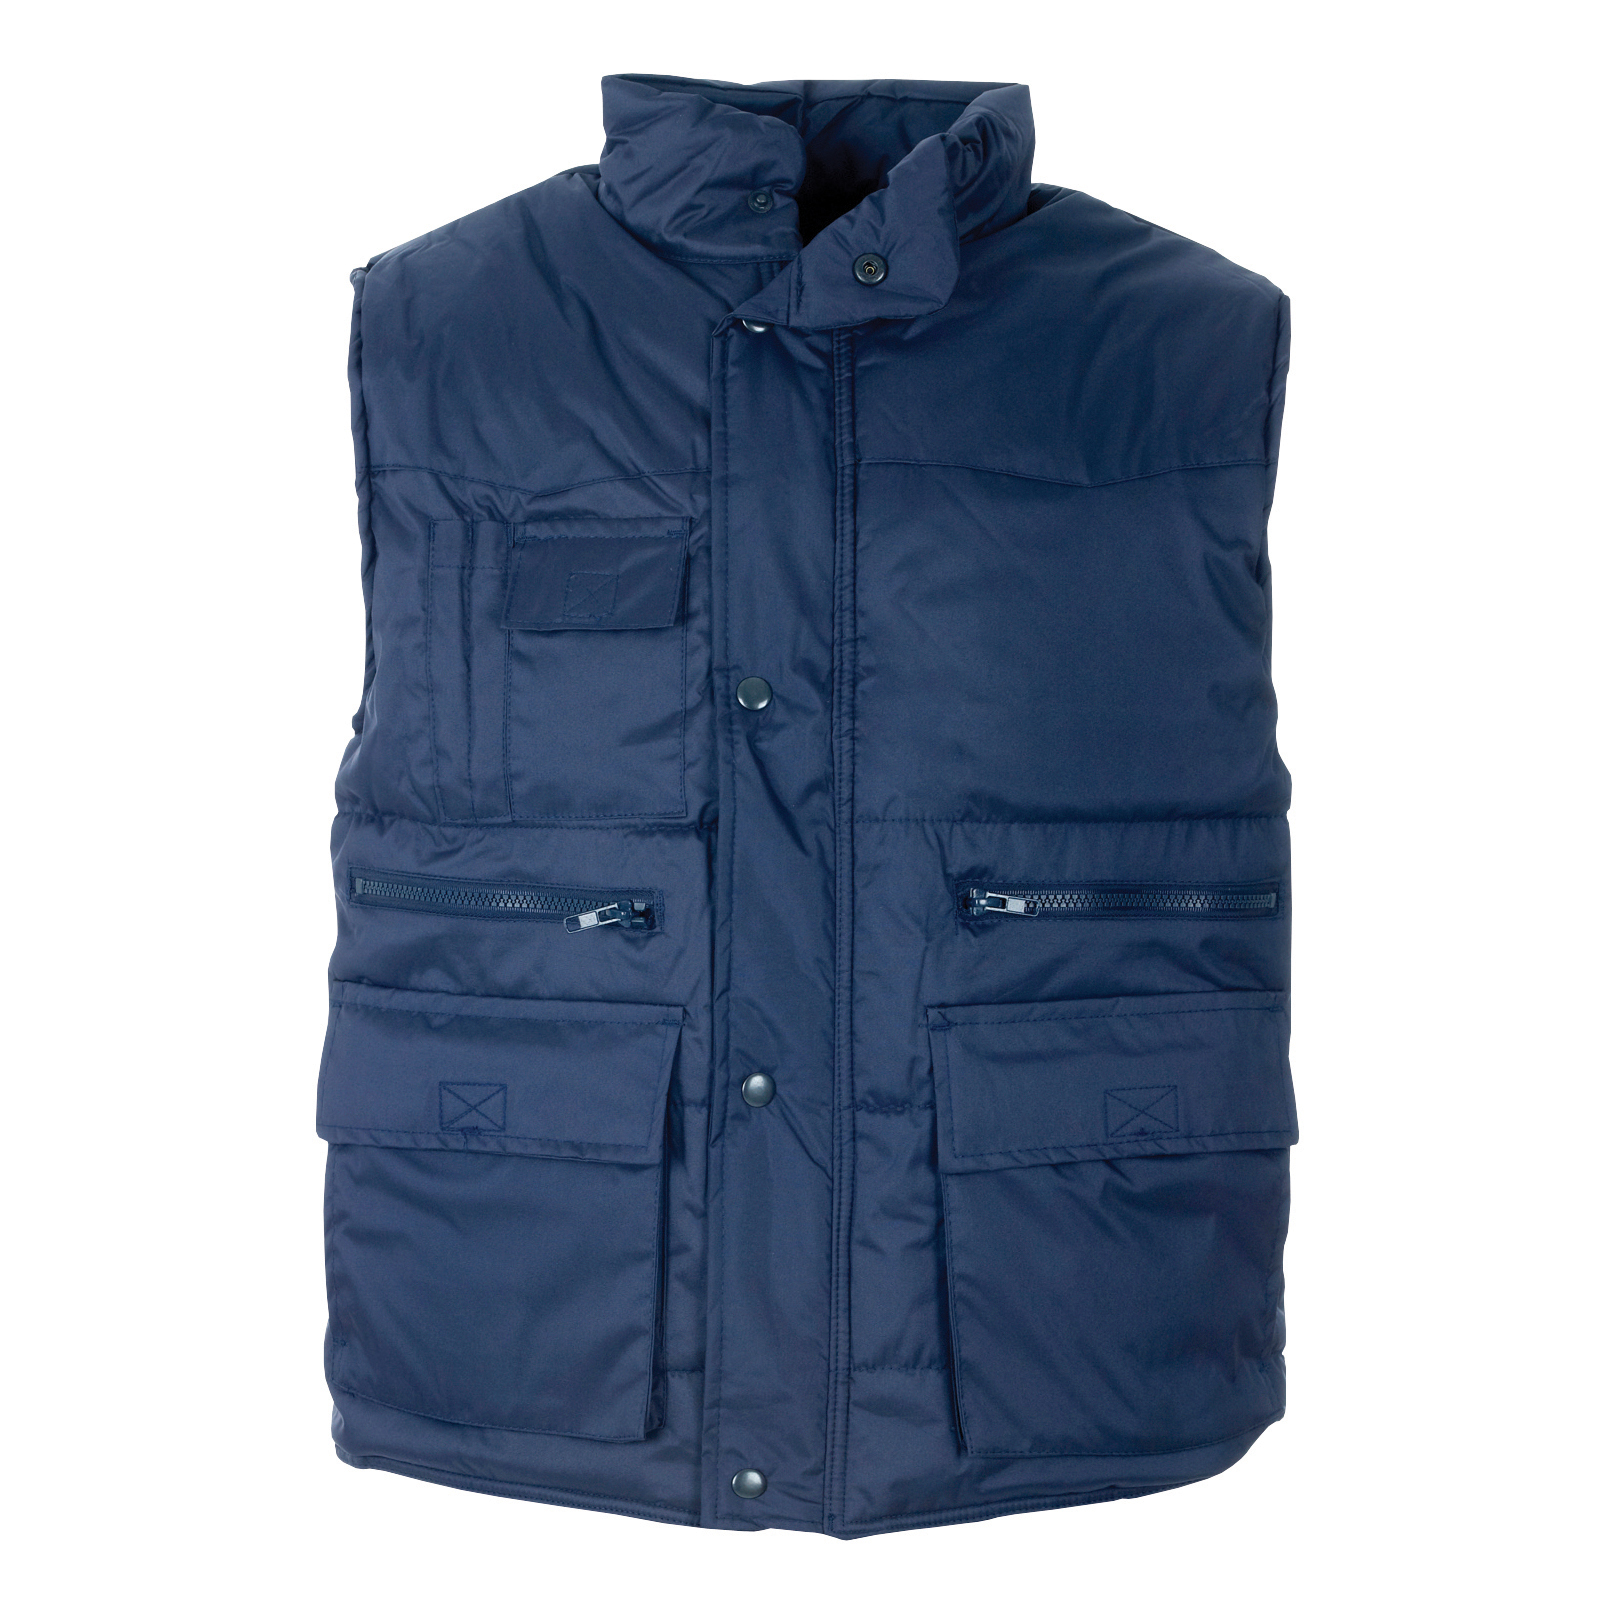 Body Warmer Polyester with Padding & Multi Pockets XL Navy Ref HBNXL *Approx 3 Day Leadtime*